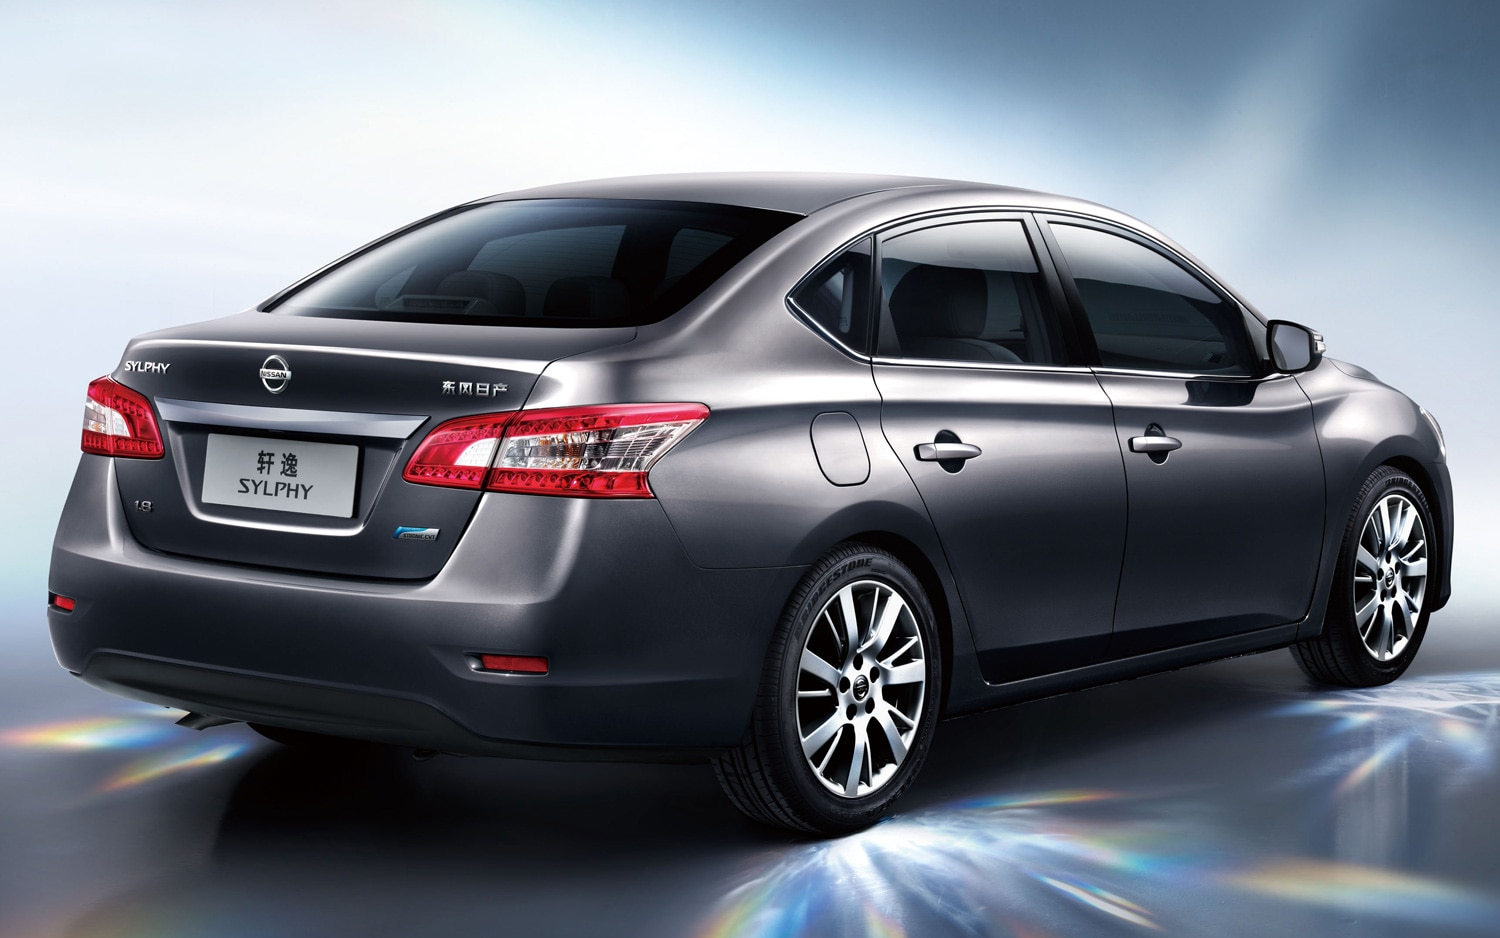 Nissan sylphy photo - 9